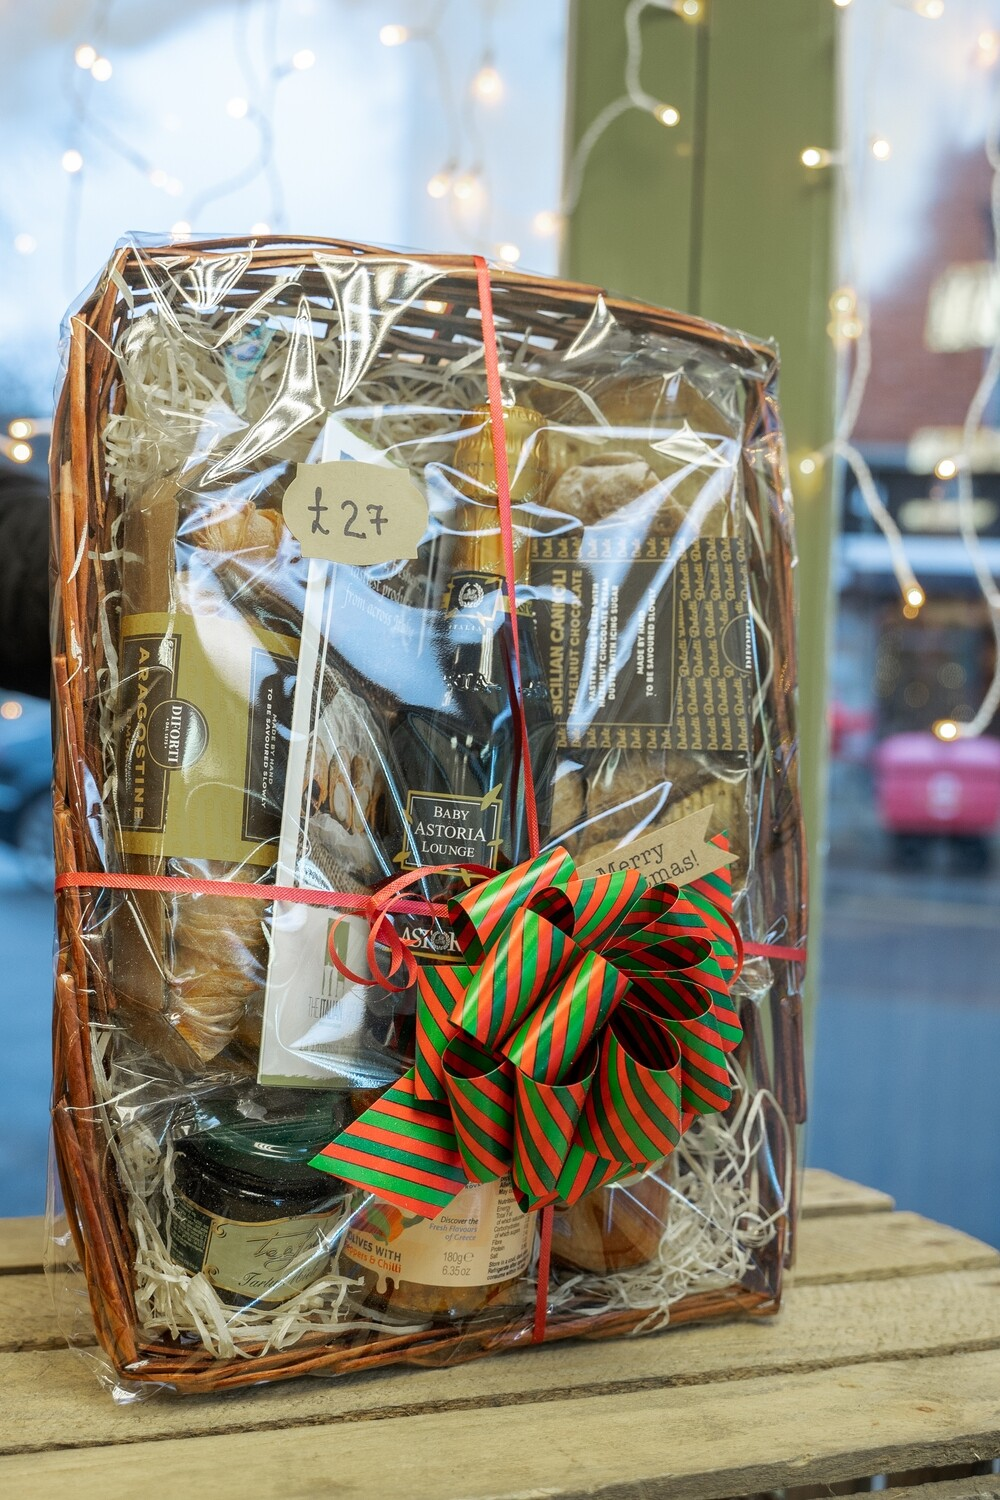 Hand-made Gift Basket Full of Italian Gifts #1